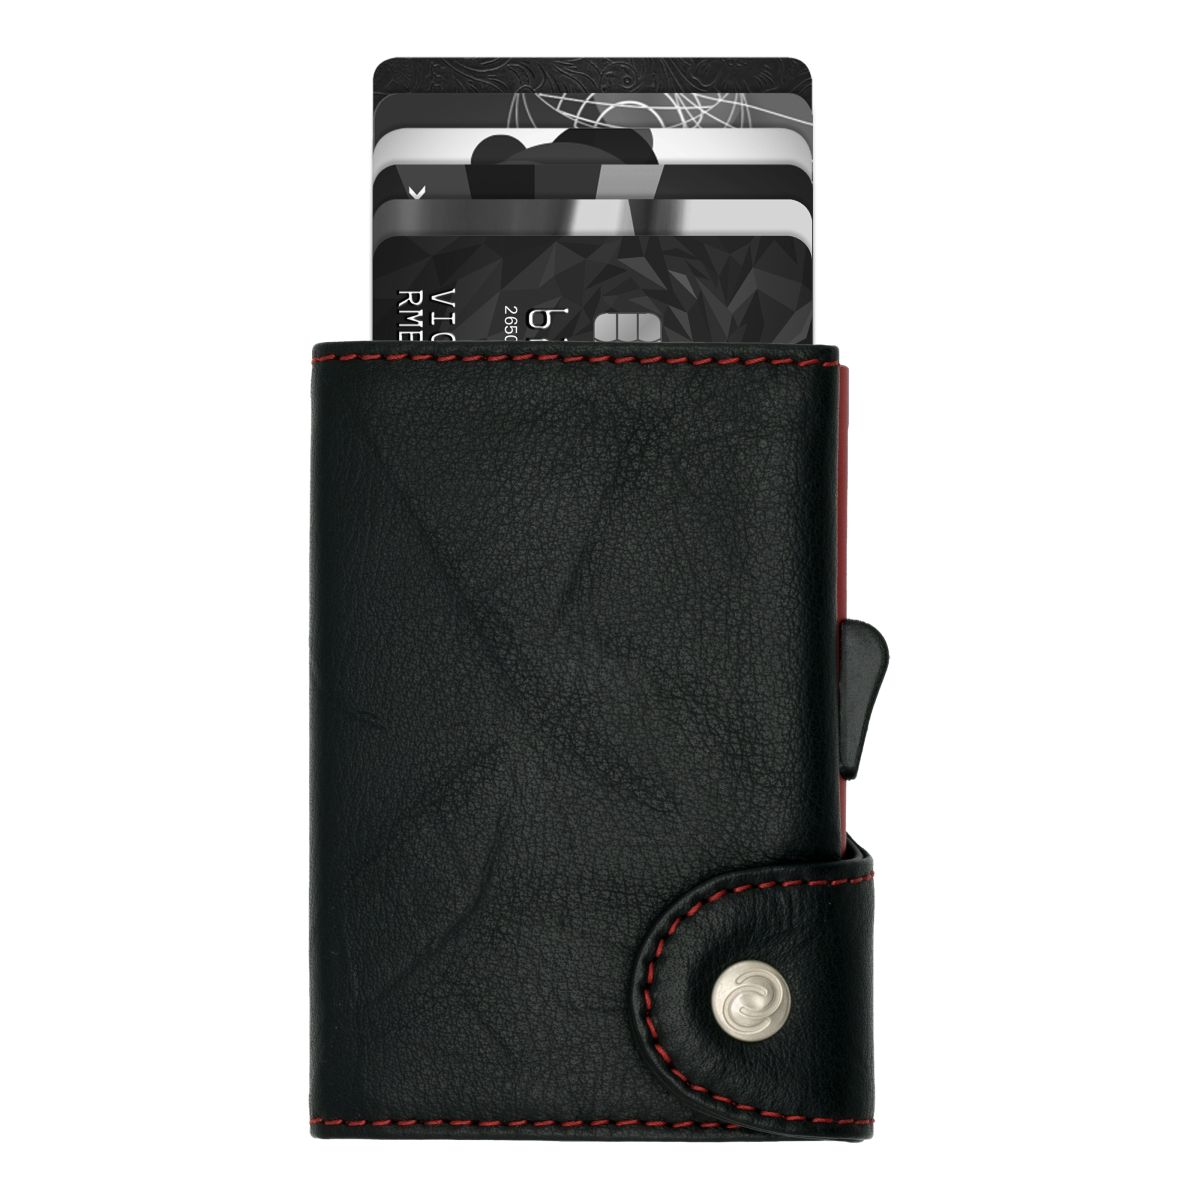 C-Secure Aluminum Card Holder with Genuine Leather - Black / Red